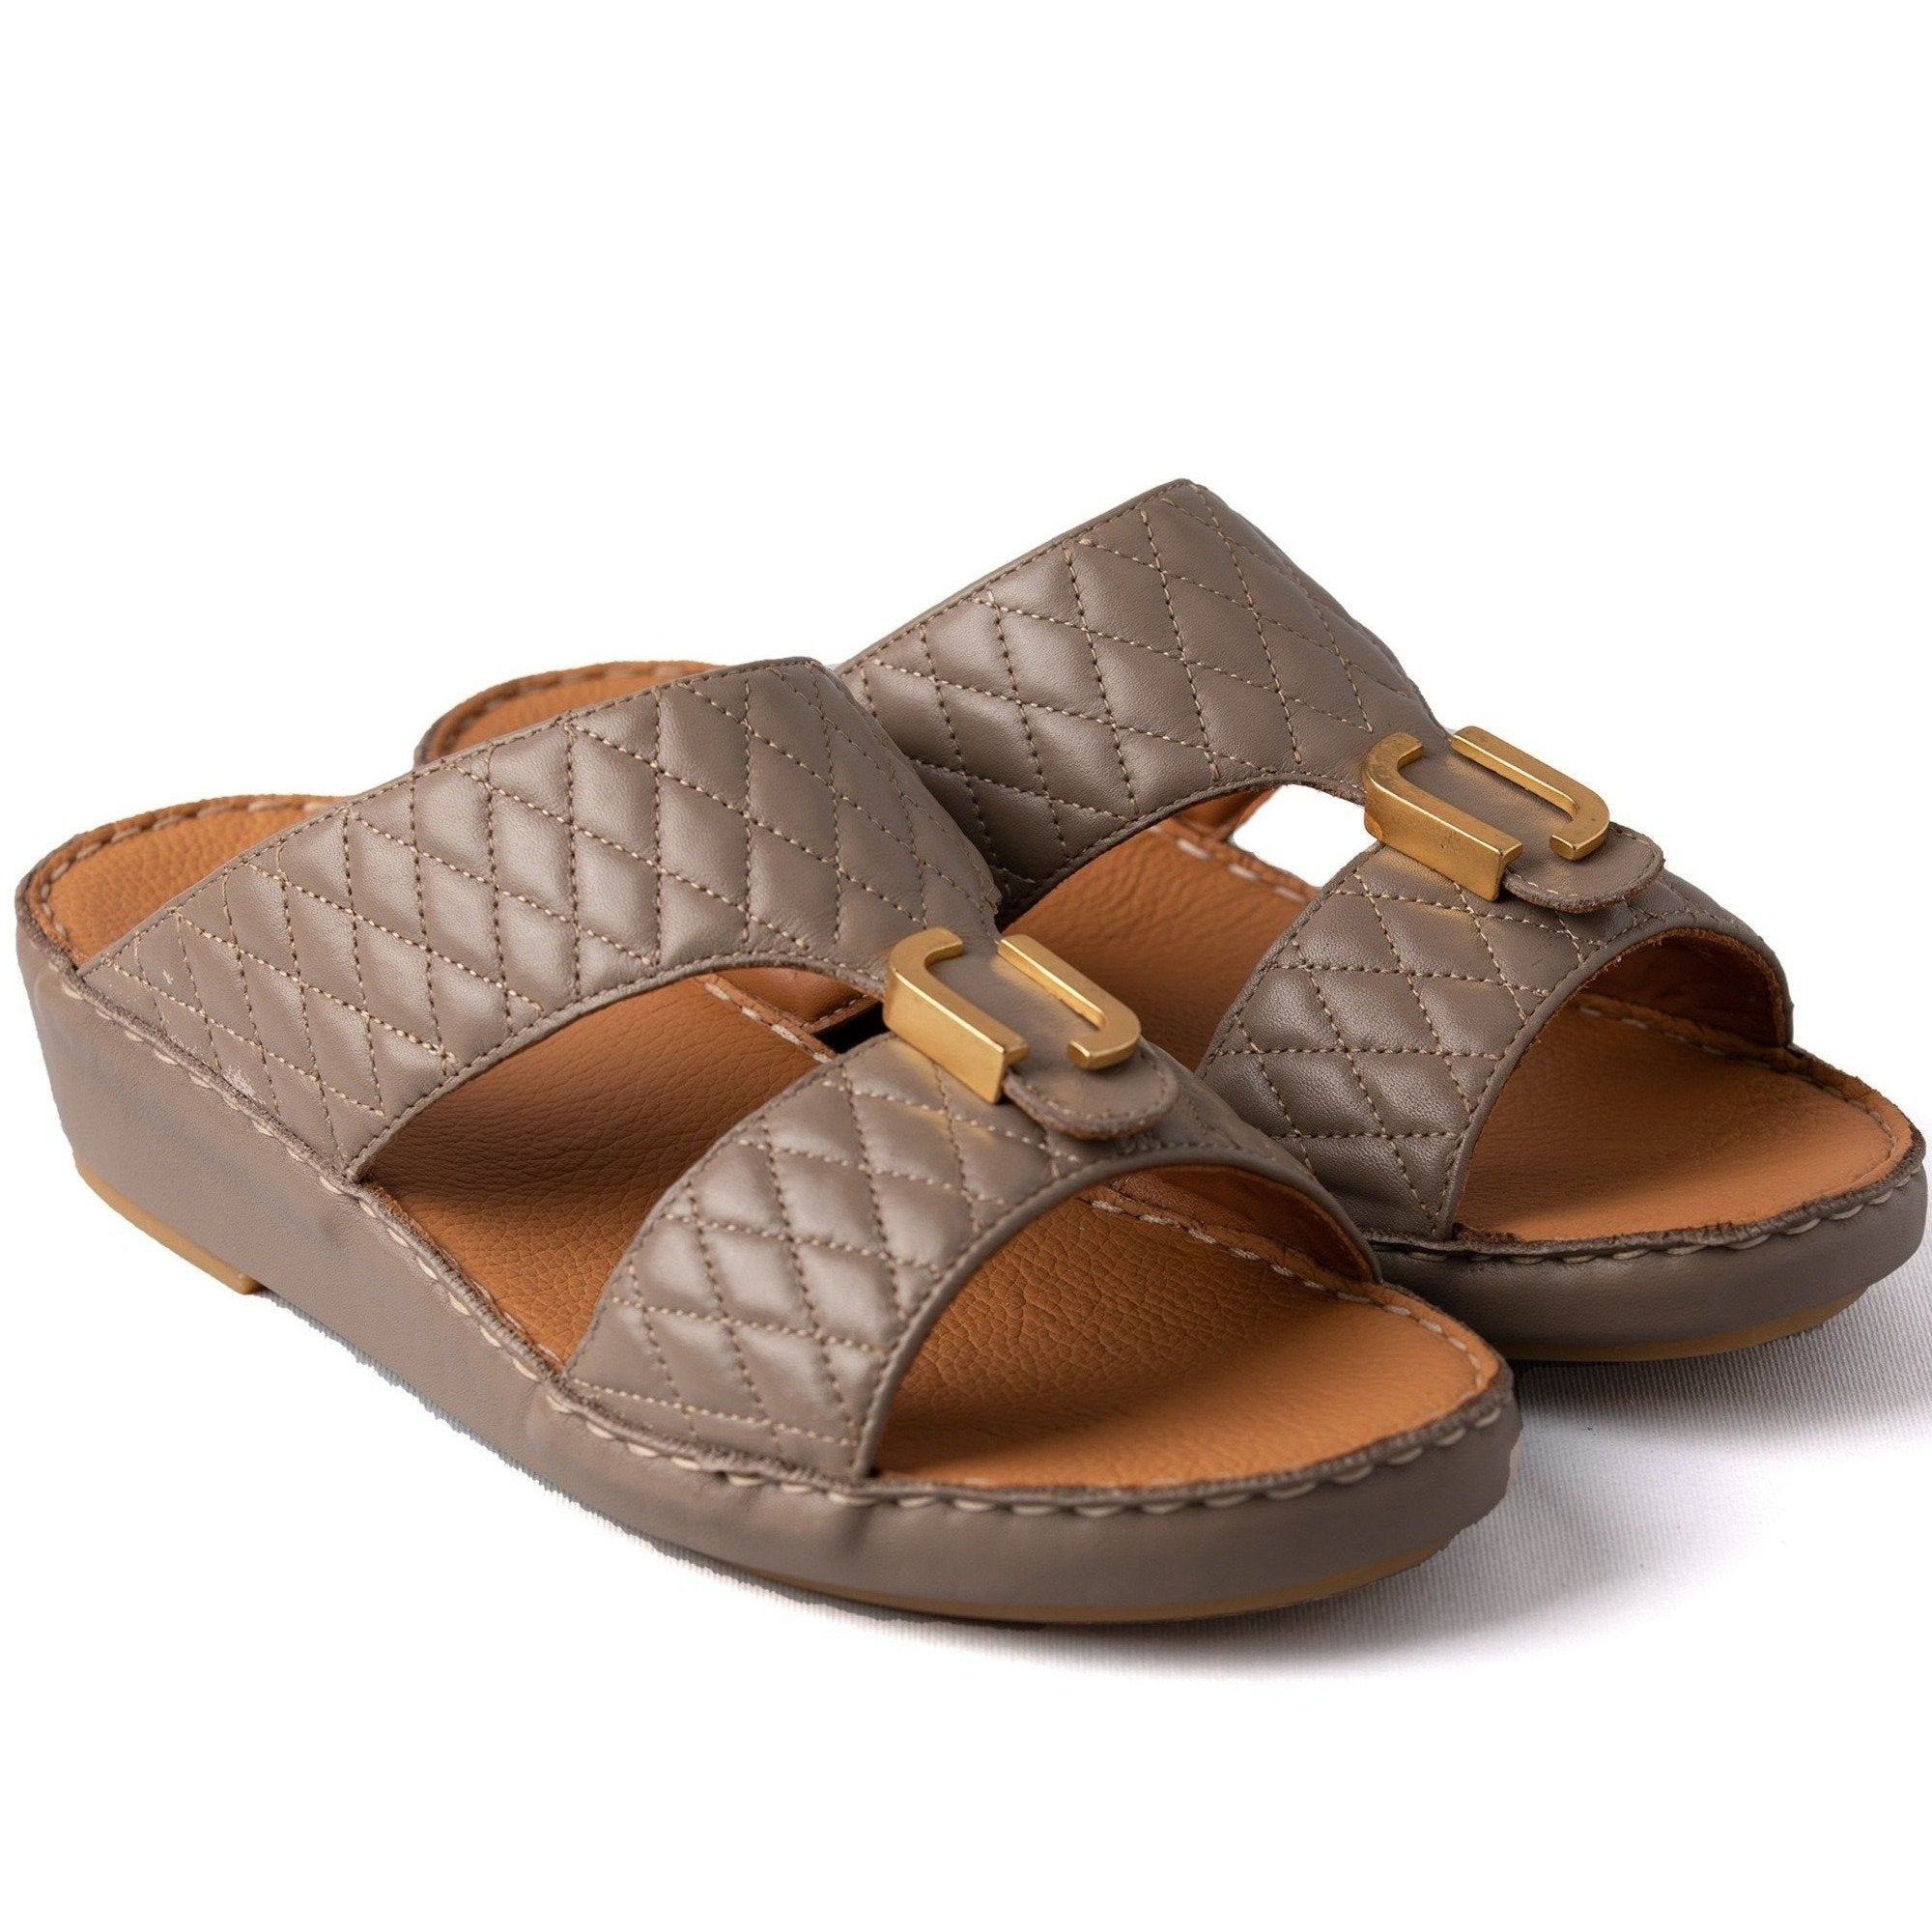 EARTH DIAMOND STITCHED ARABIC SANDAL (317-66)